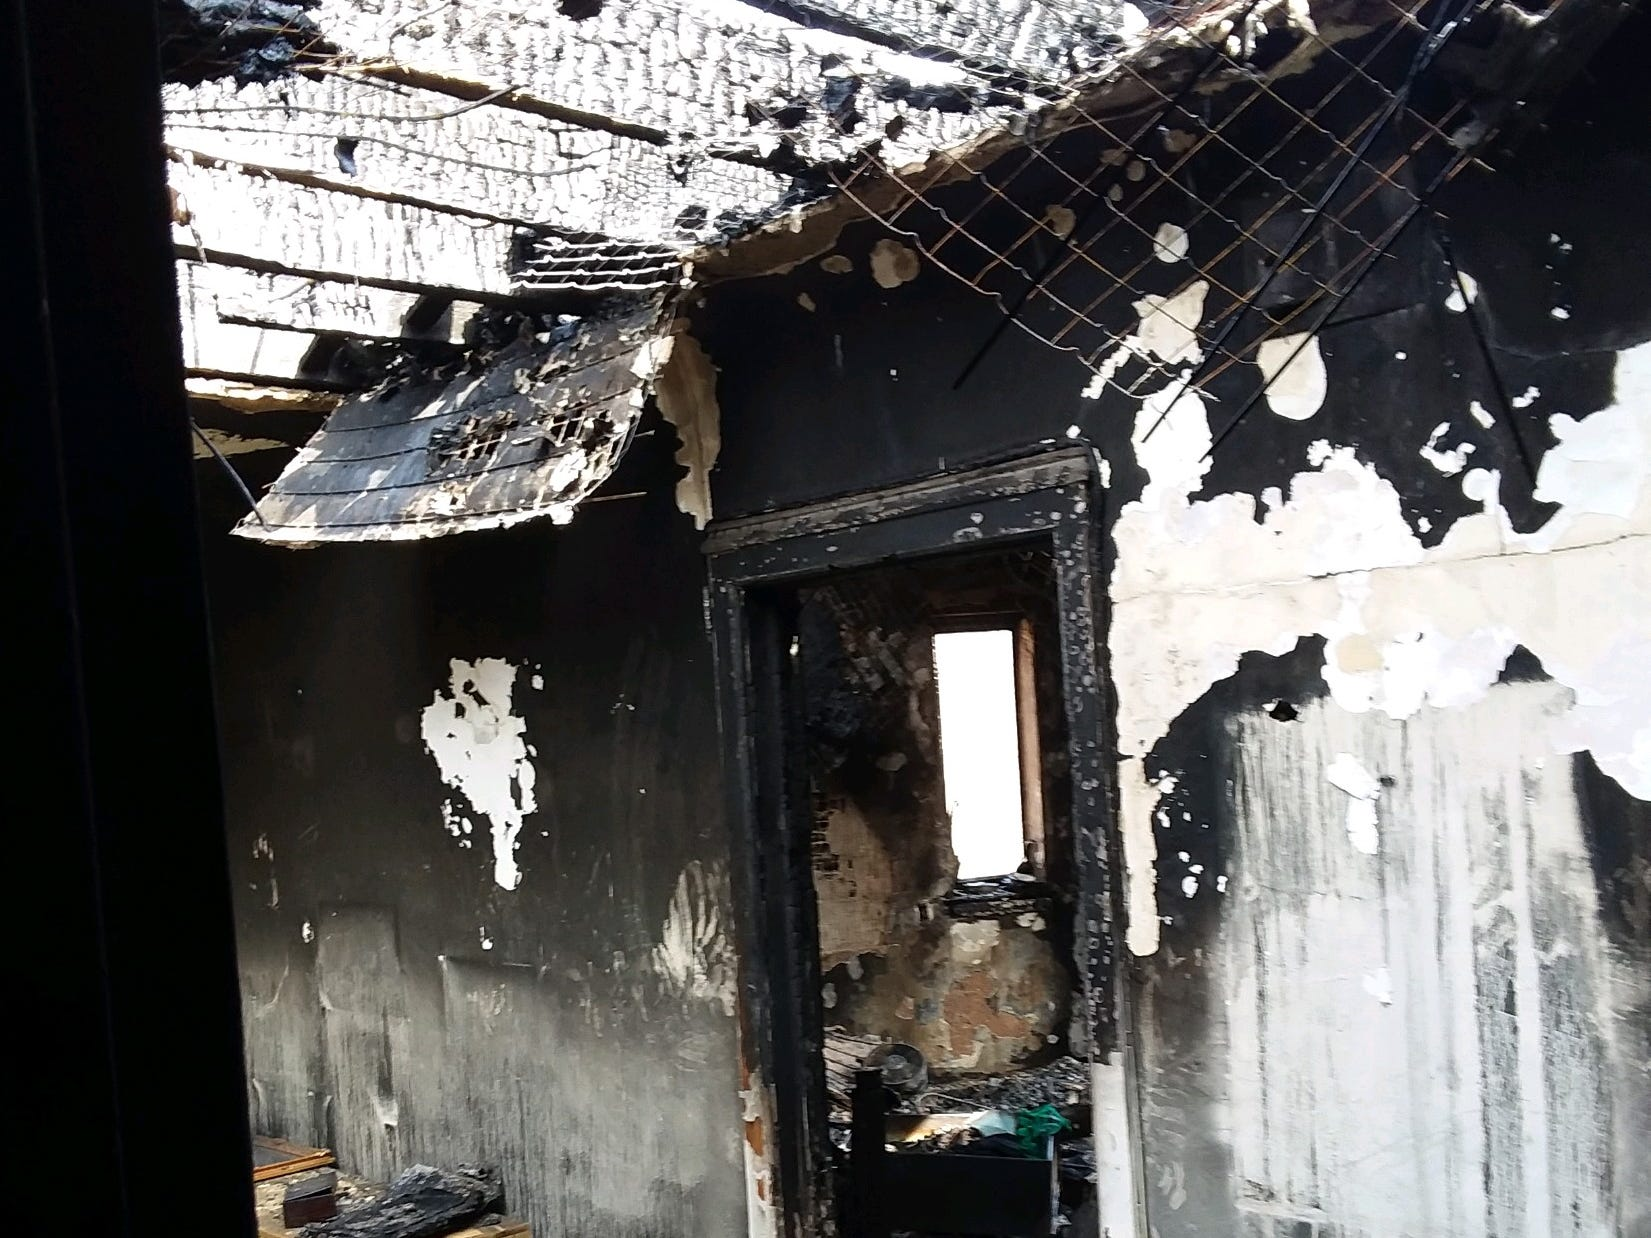 This is the aftermath of the March 12, 2019, fire at 15 Parkview Ave. in Yonkers, which was started by welding.